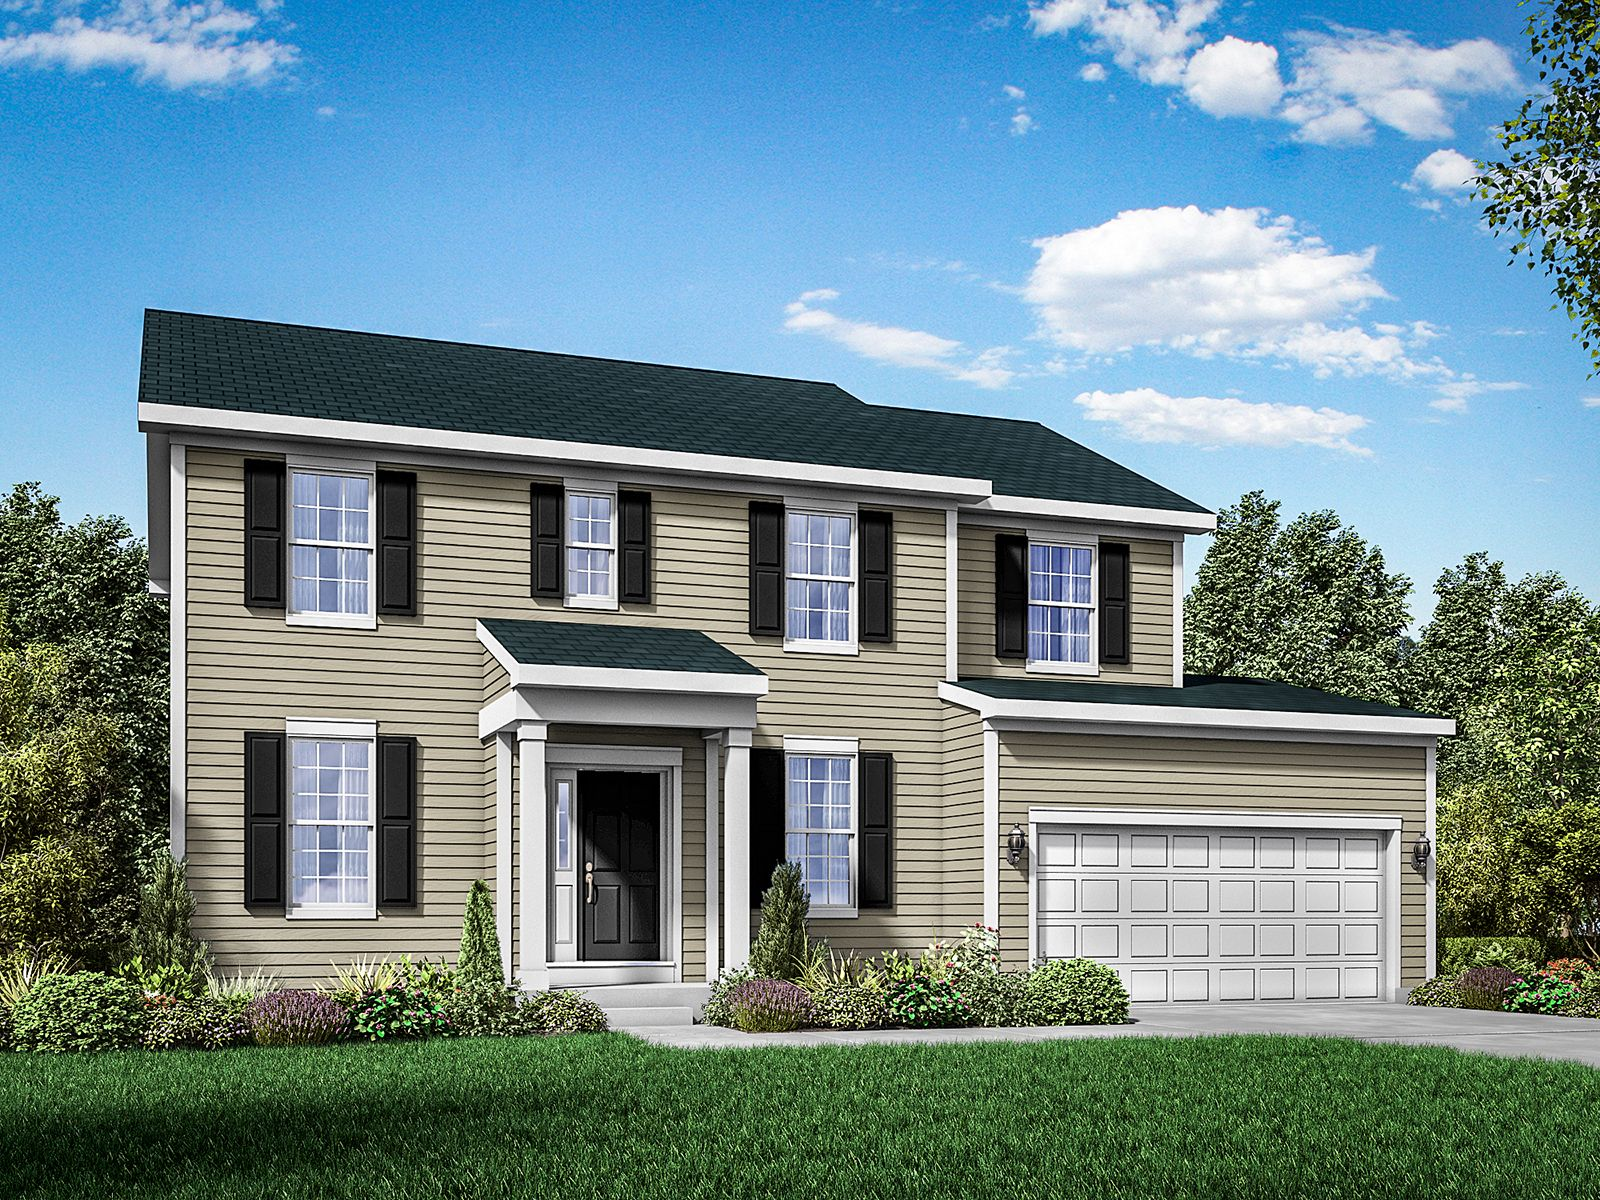 Colonial exterior elevation rendering Stratford II by William Ryan Homes:Stratford II - Colonial